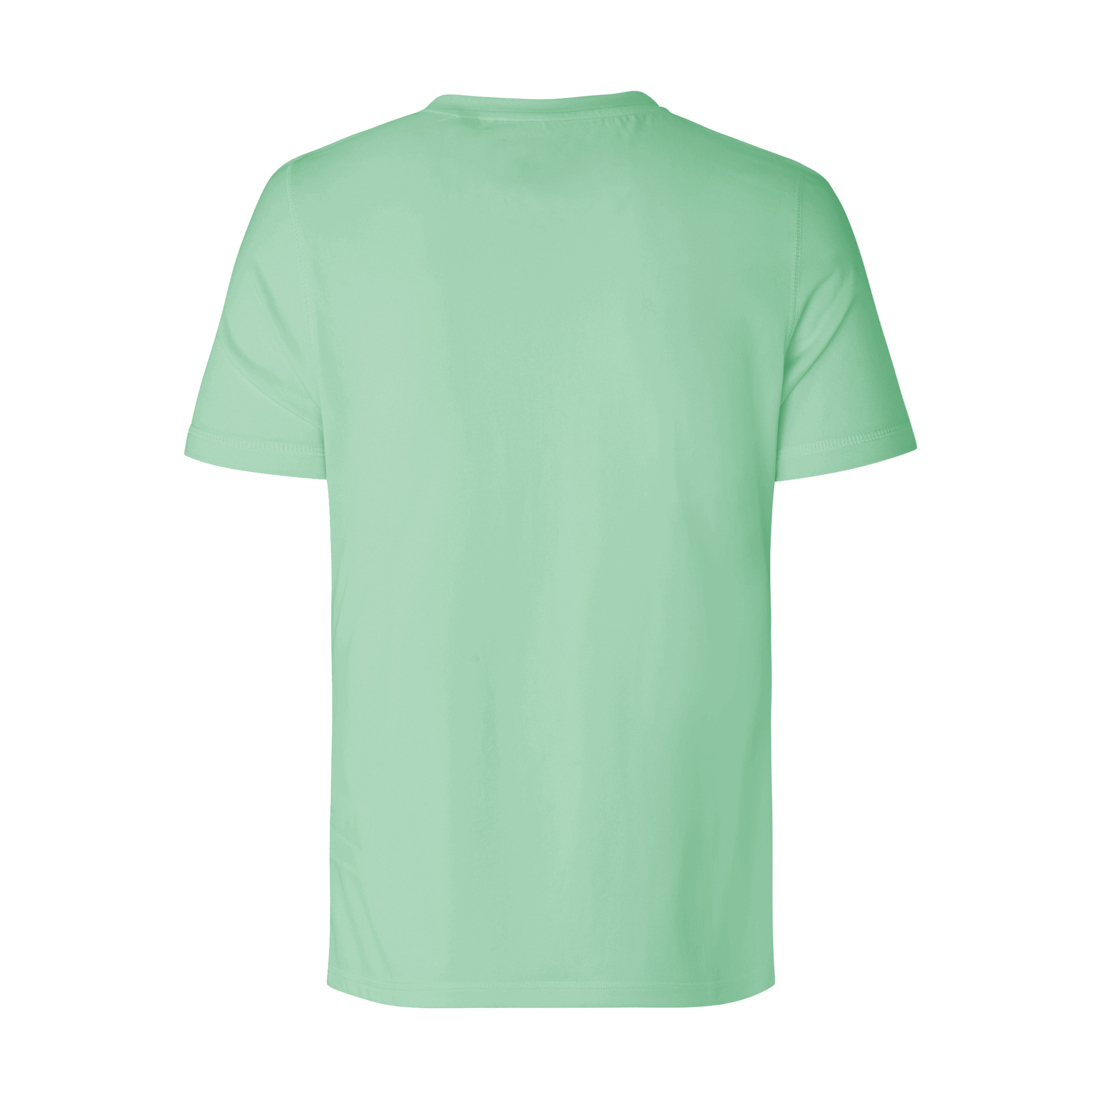 Neutral Recycled Performance T-Shirt R61001 3